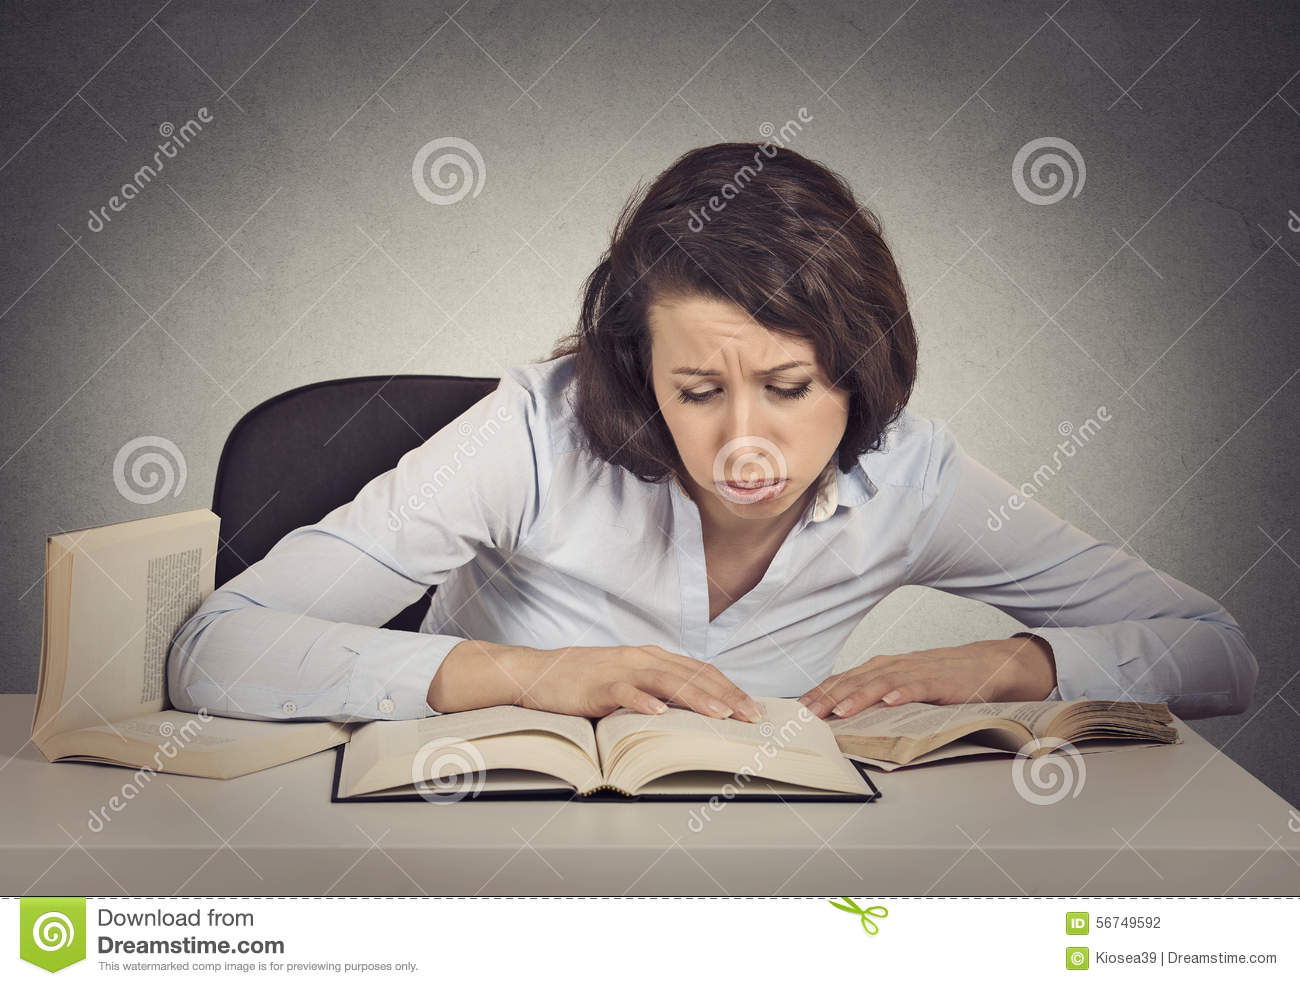 Woman student with desperate expression looking at her books